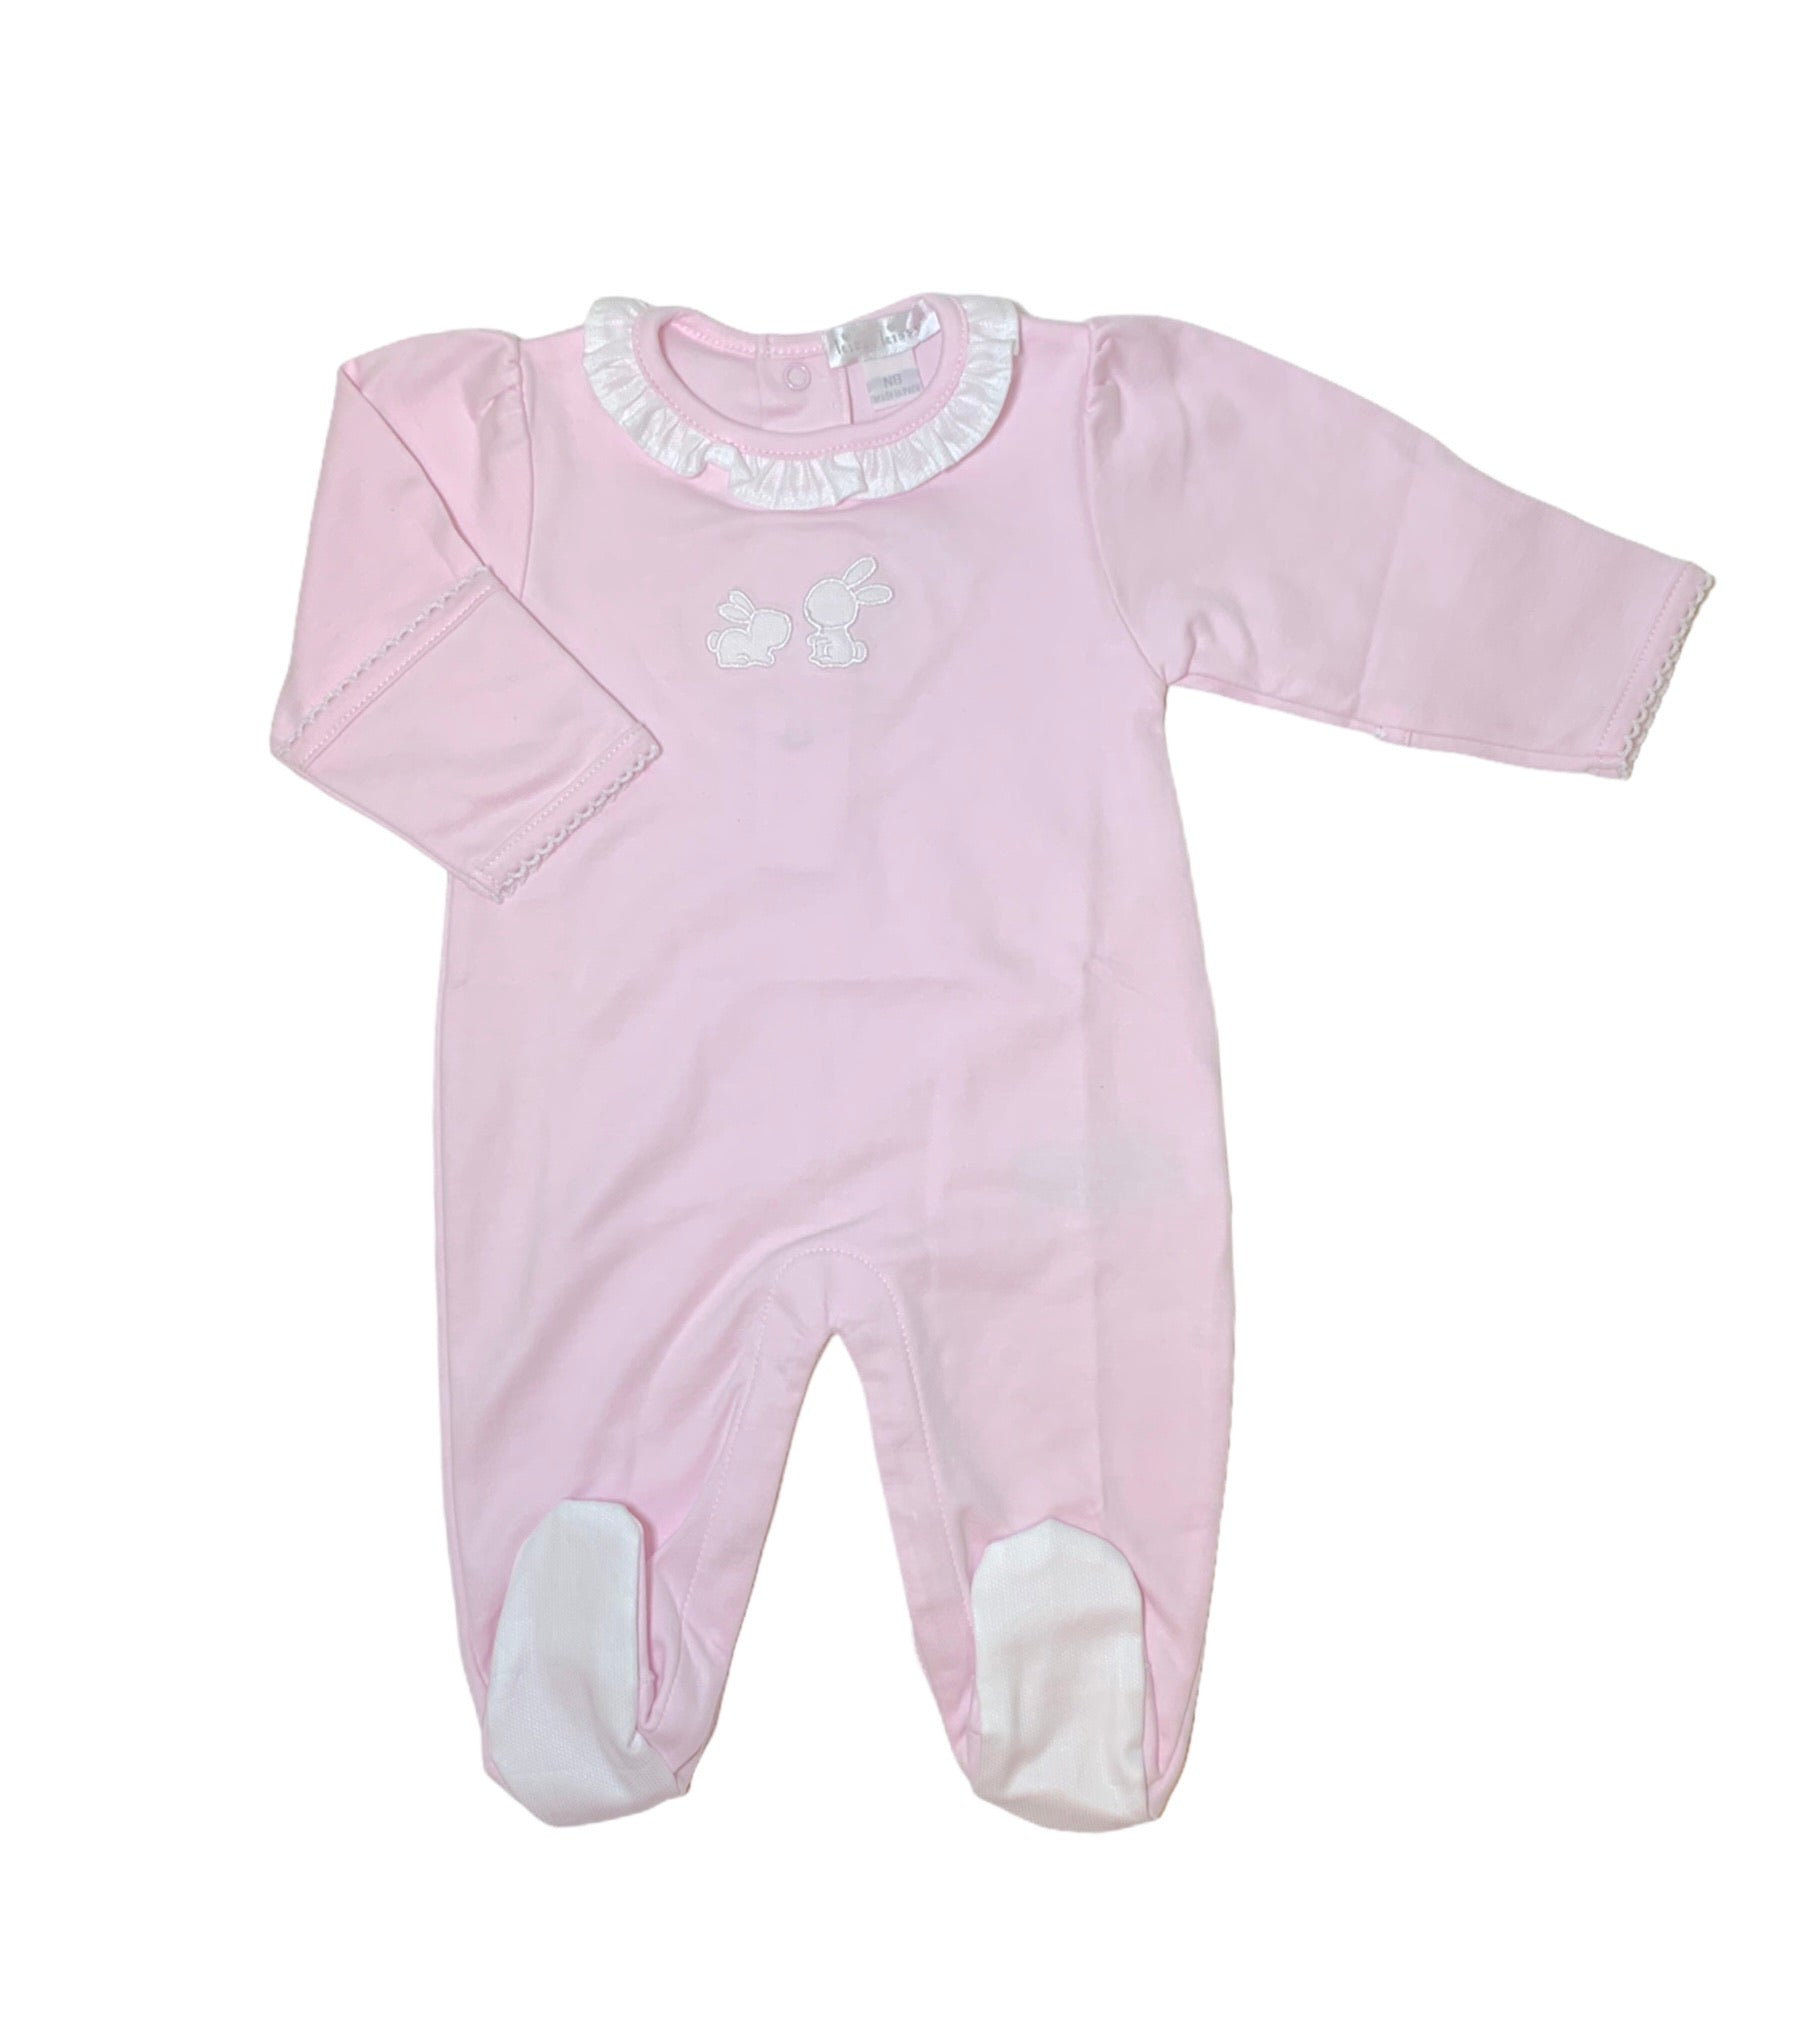 light pink footie with white bunny on top center, white ruffle around neckline, white fabric on bottom of feet